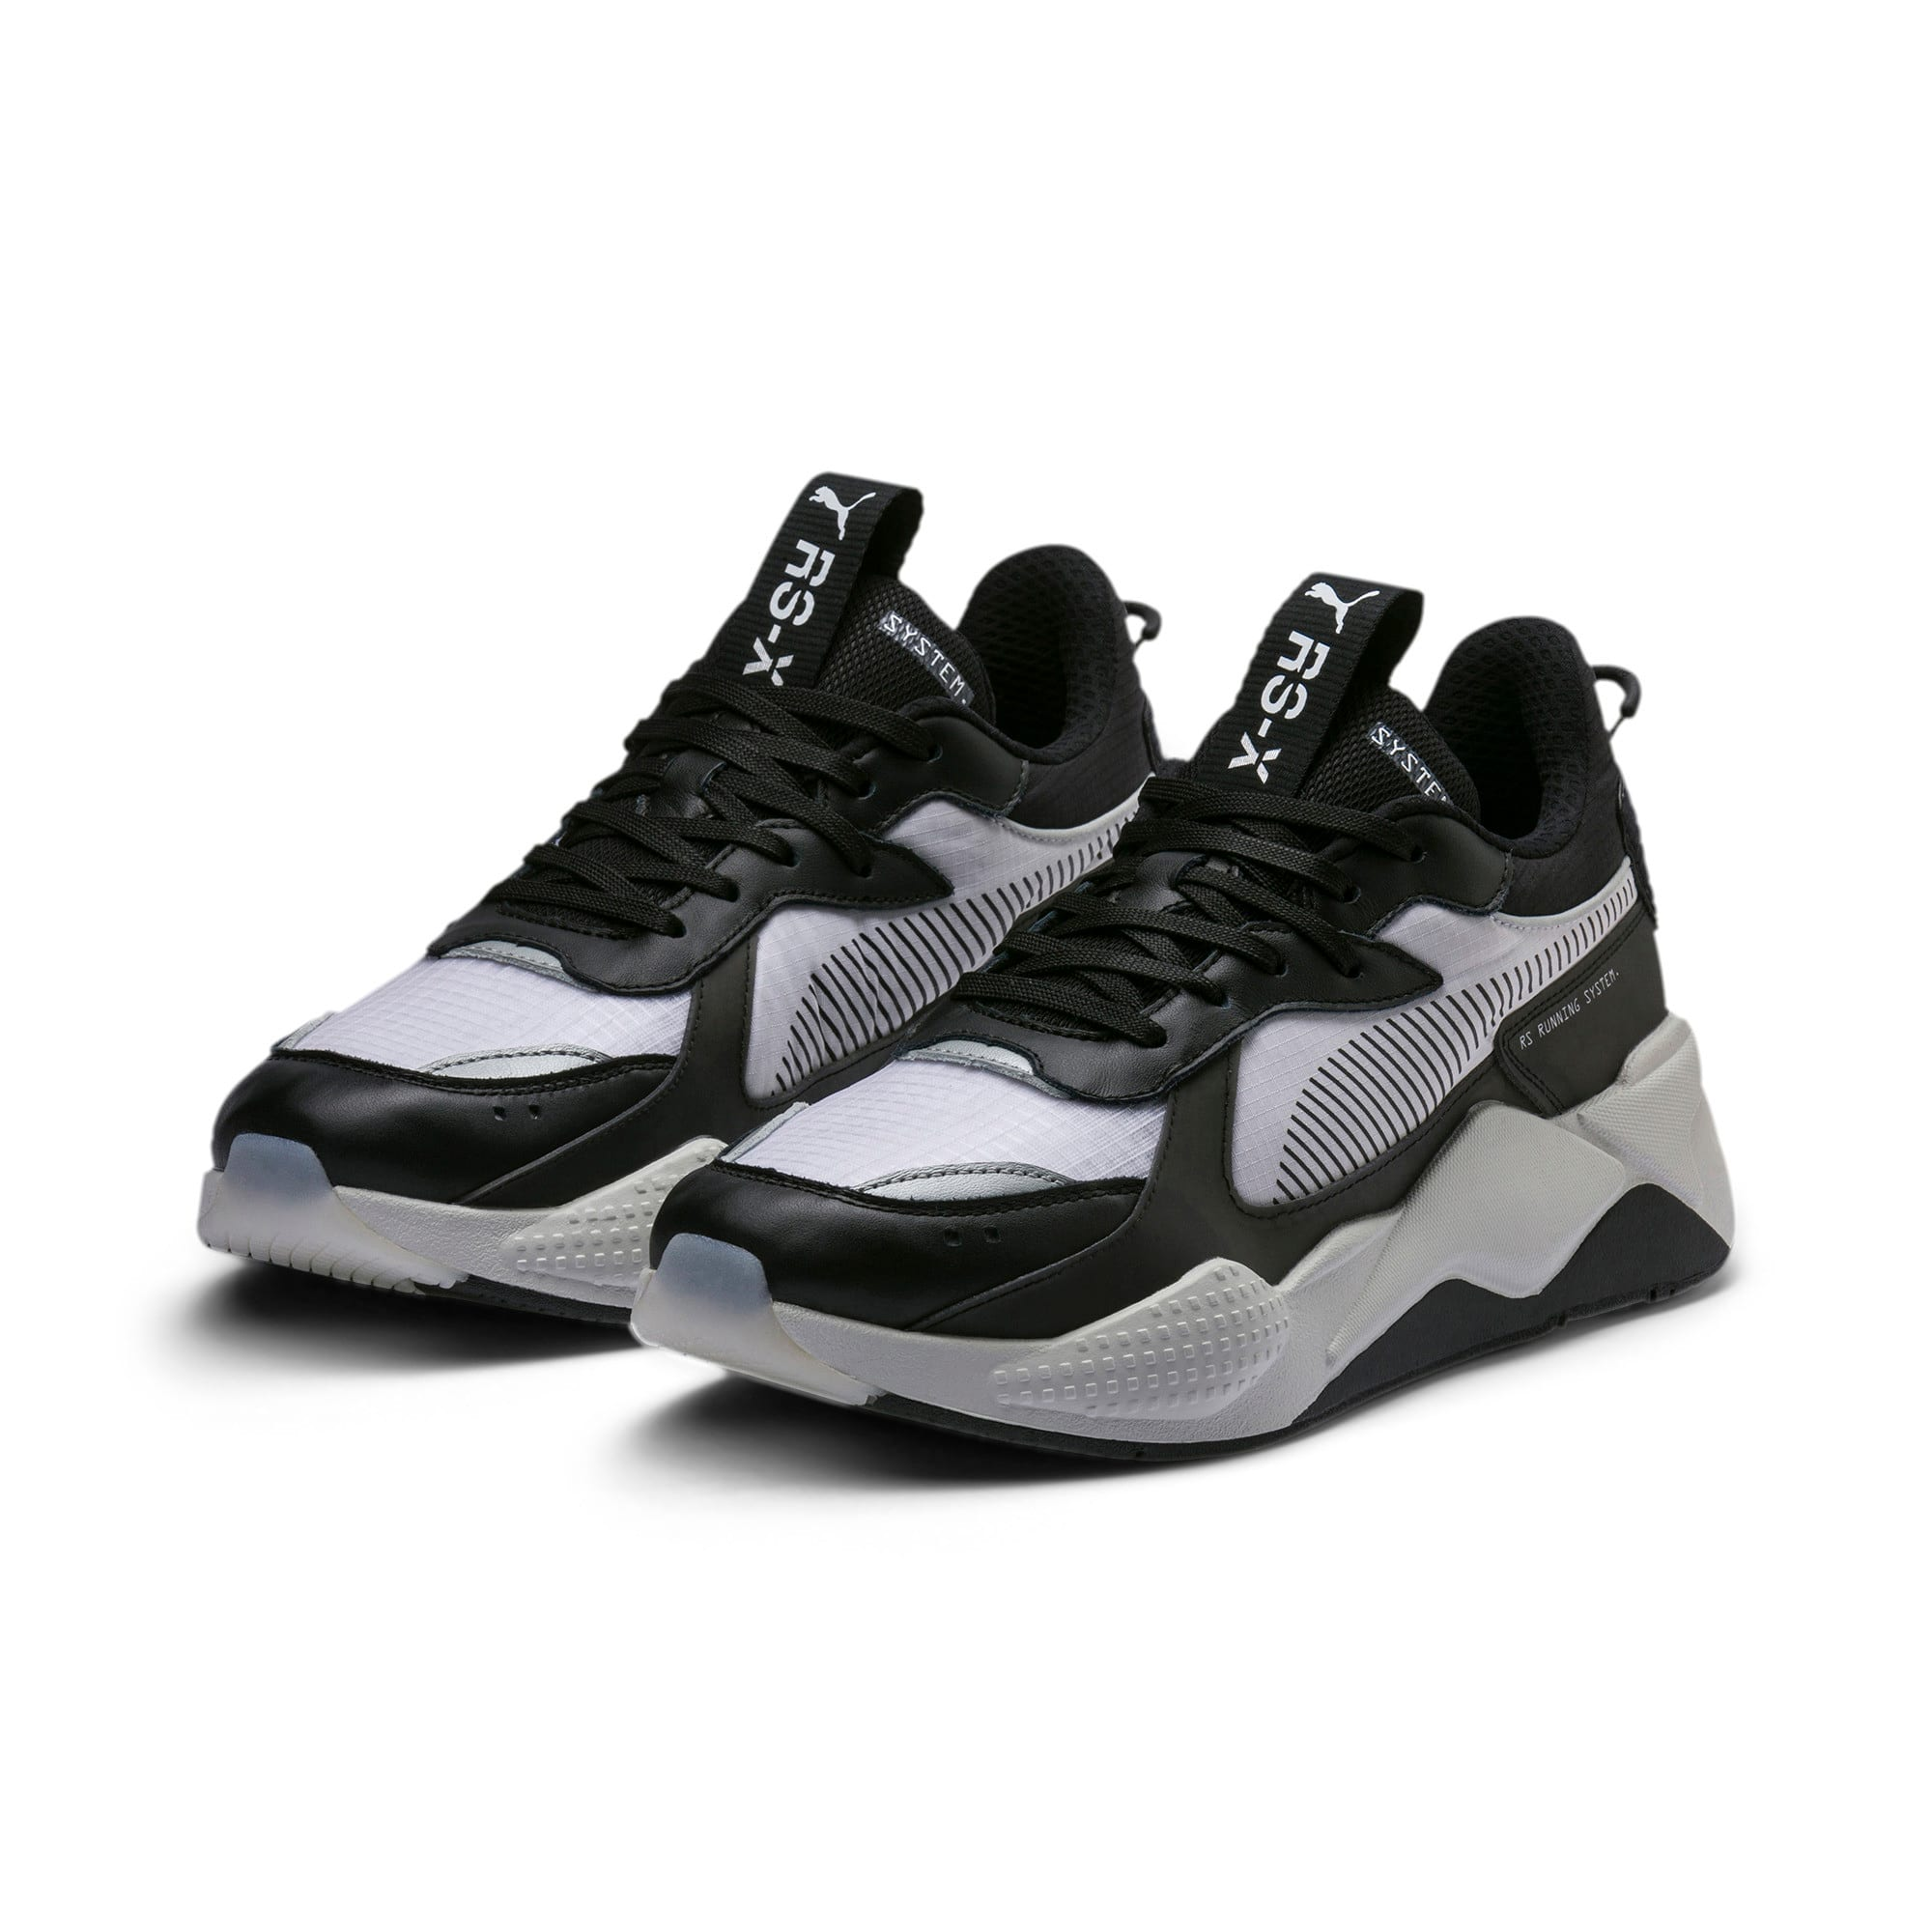 Thumbnail 3 of RS-X TECH スニーカー, Puma Black-Vaporous Gray, medium-JPN